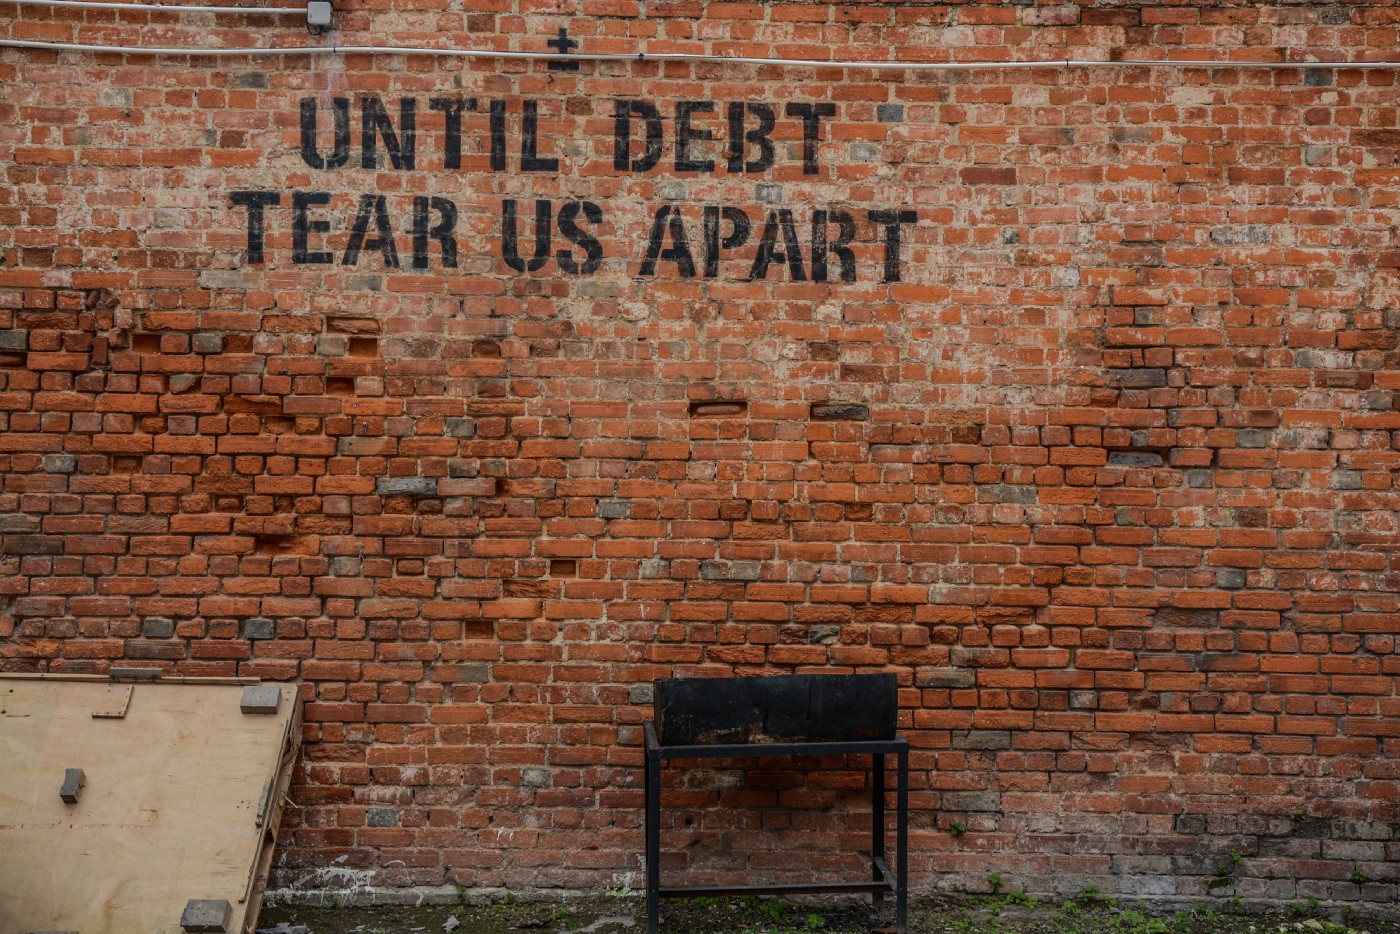 """Brick wall with the words """"UNTIL DEBT TEAR US APART"""" painted on it"""